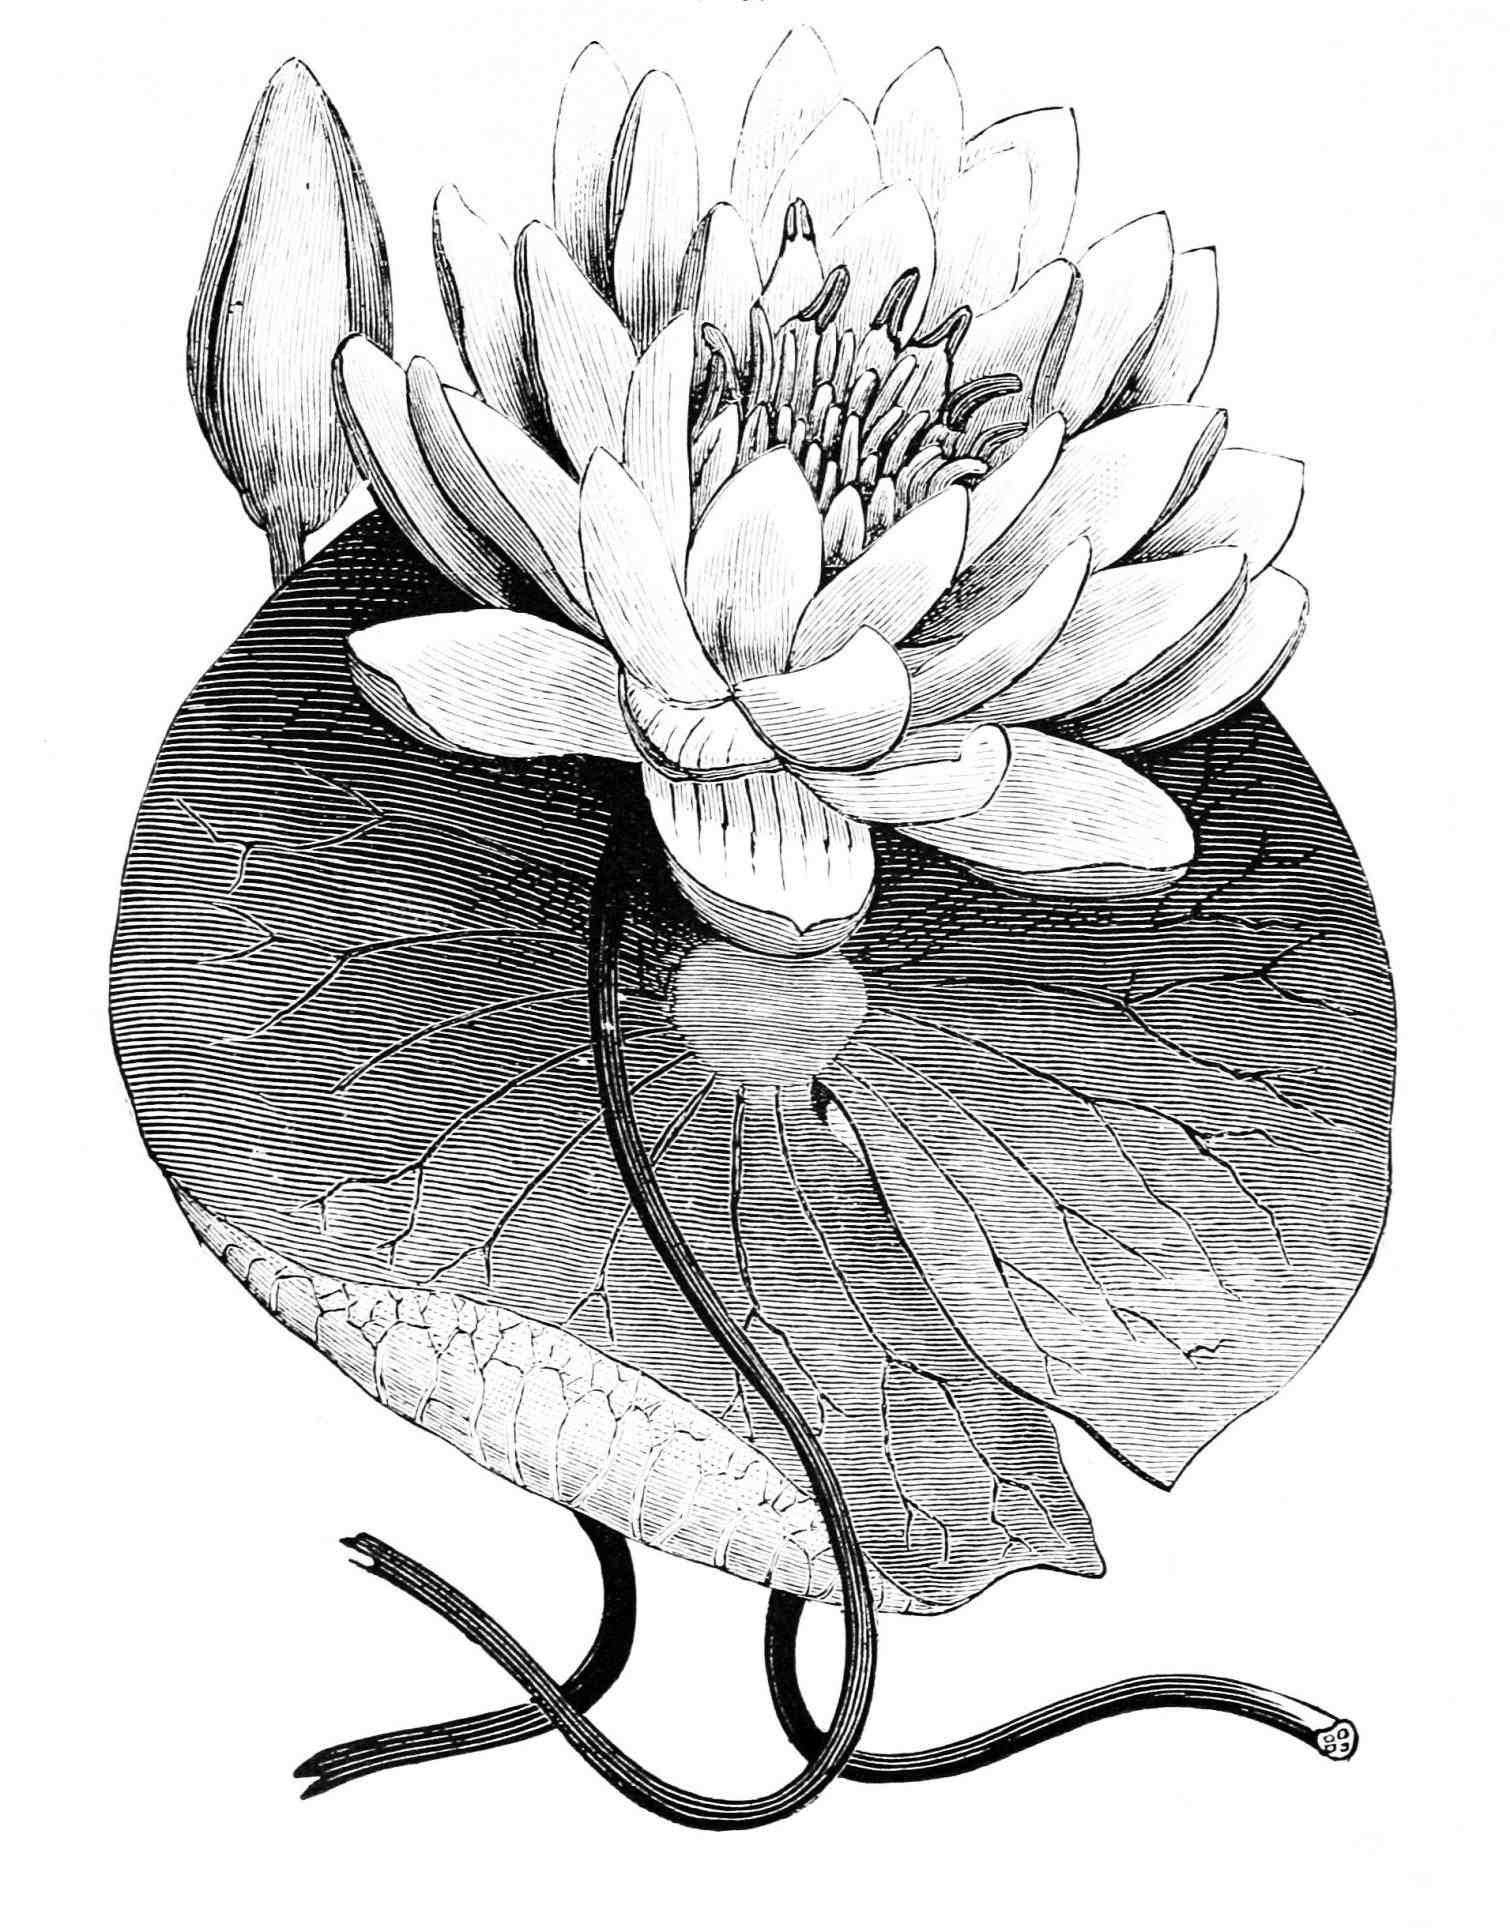 Lily drawing tattoo at getdrawings free for personal use lily 1510x1928 lily pad coloring image water lily drawing clock brucius izmirmasajfo